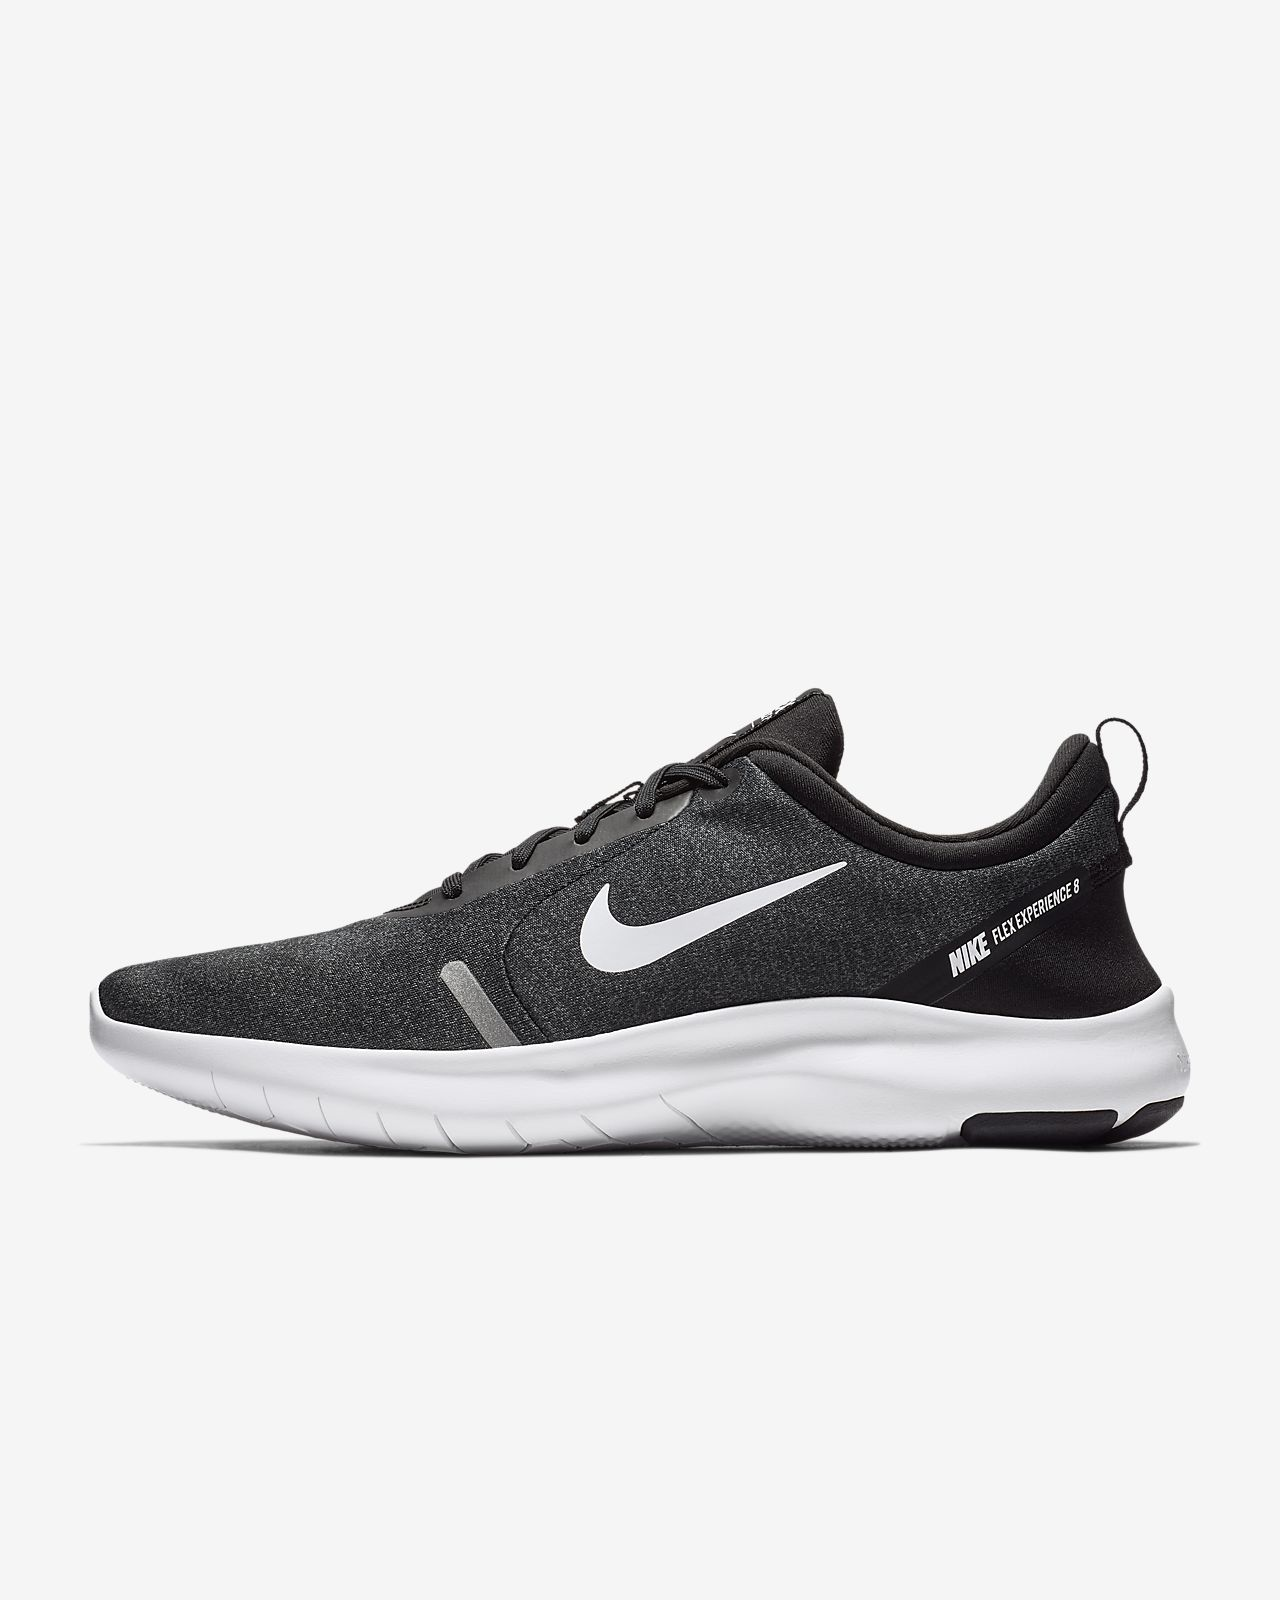 Nike Flex Contact Men's Running Shoes | Running shoes for